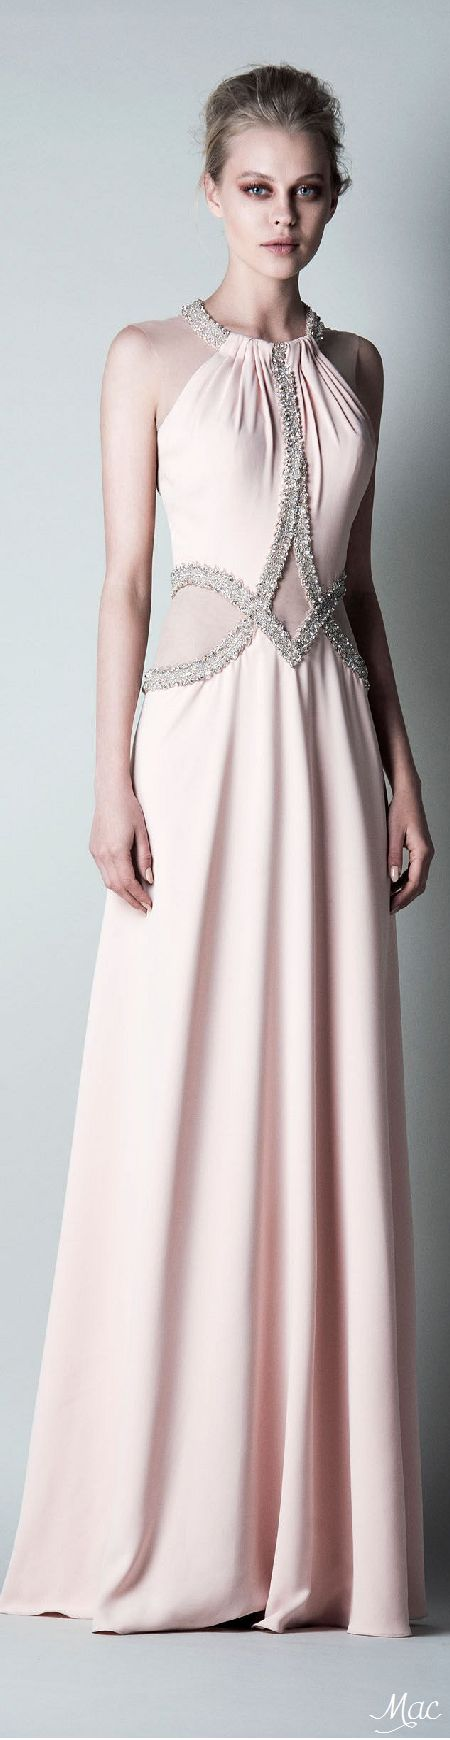 Pre-Fall 2015 Saiid Kobeisy. For the illusion openings.